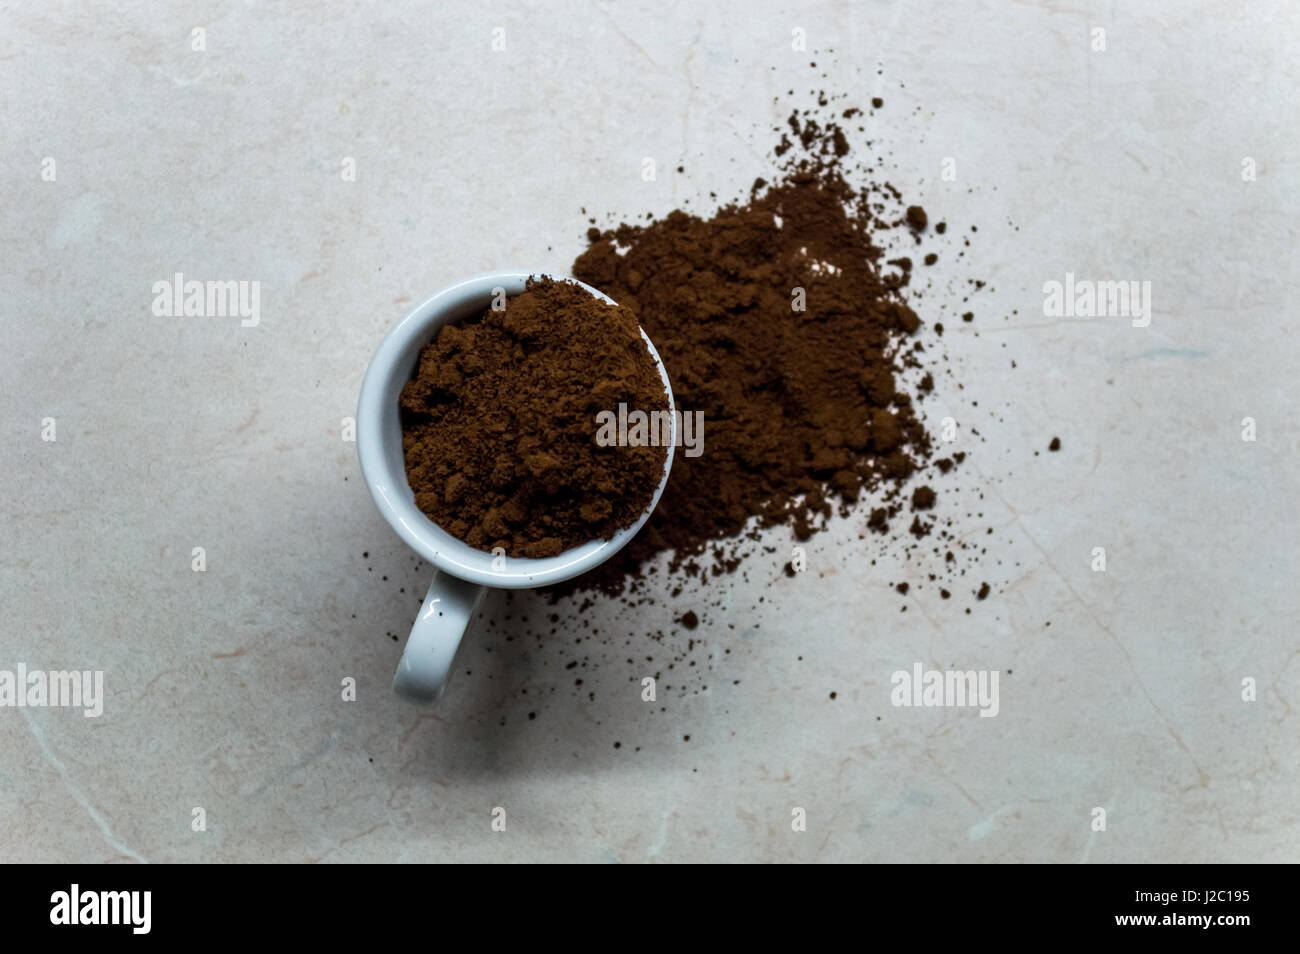 small espresso cup with ground coffee spilling J2C195 Motion Coffee Table Spilling Coffee Stock Photo Image